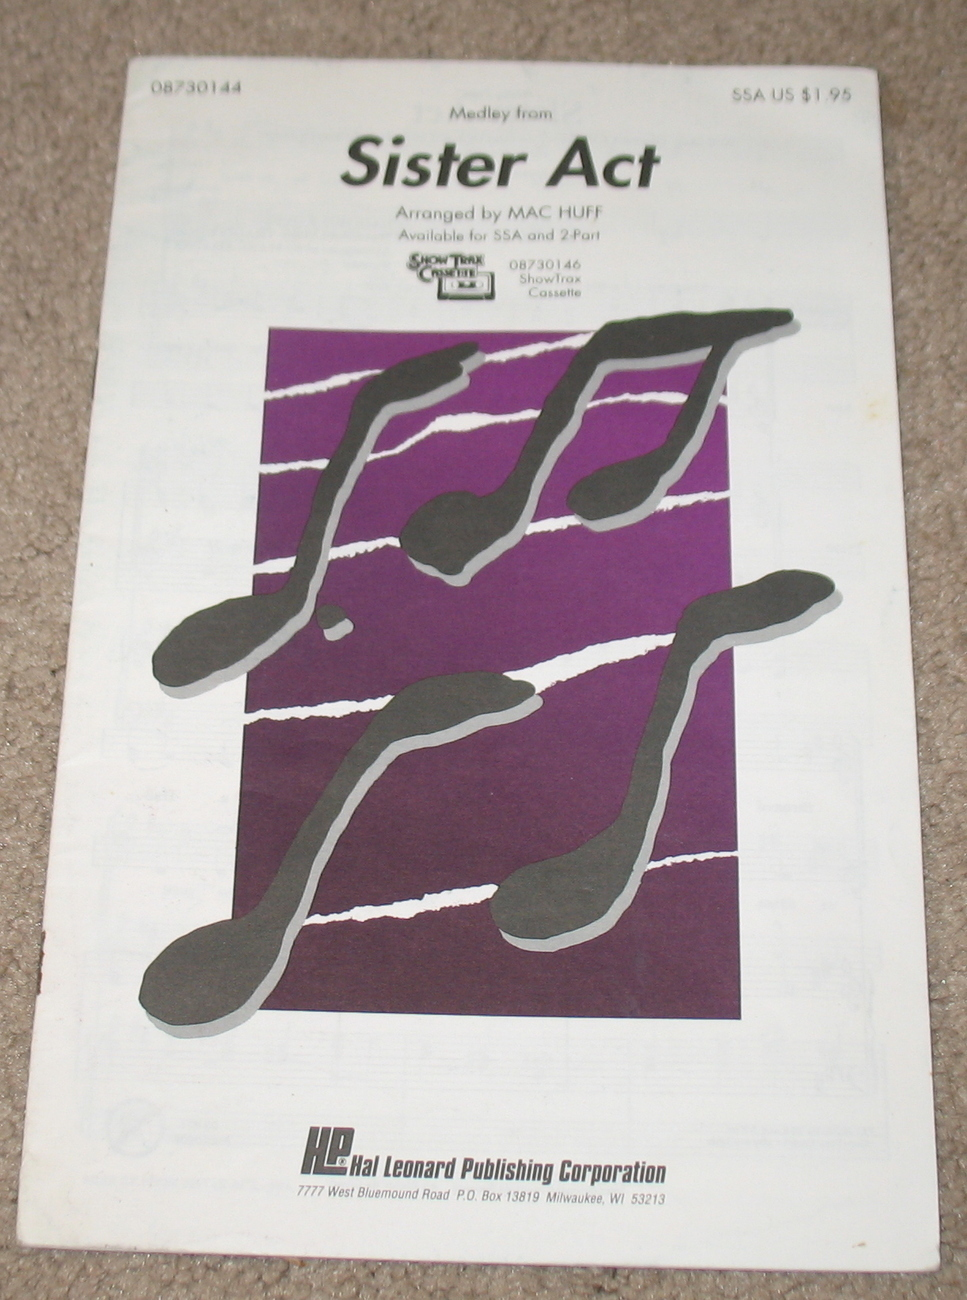 Melody from Sister Act 1993 Sheet Music